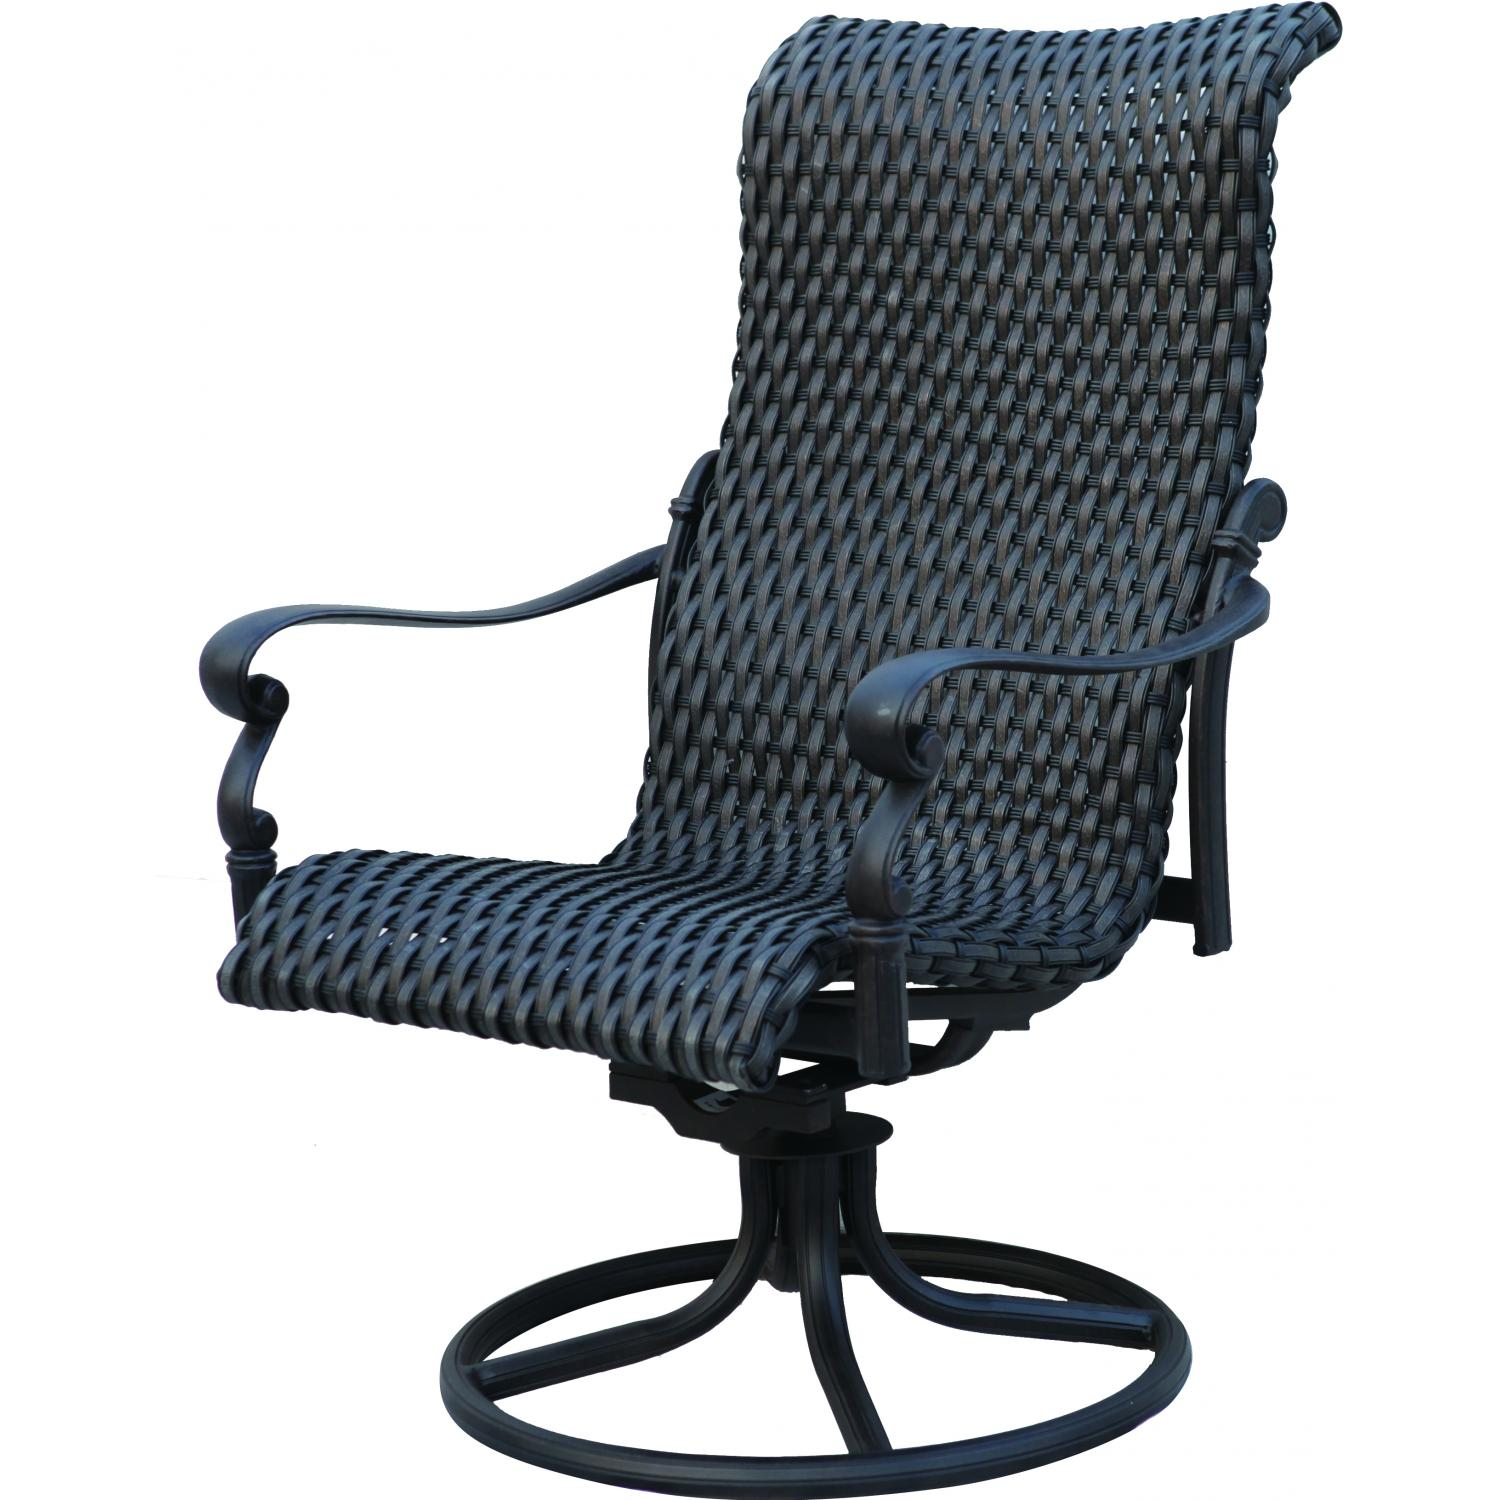 Patio furniture wicker aluminum rocker swivel chair set 2 for Outdoor swivel chairs